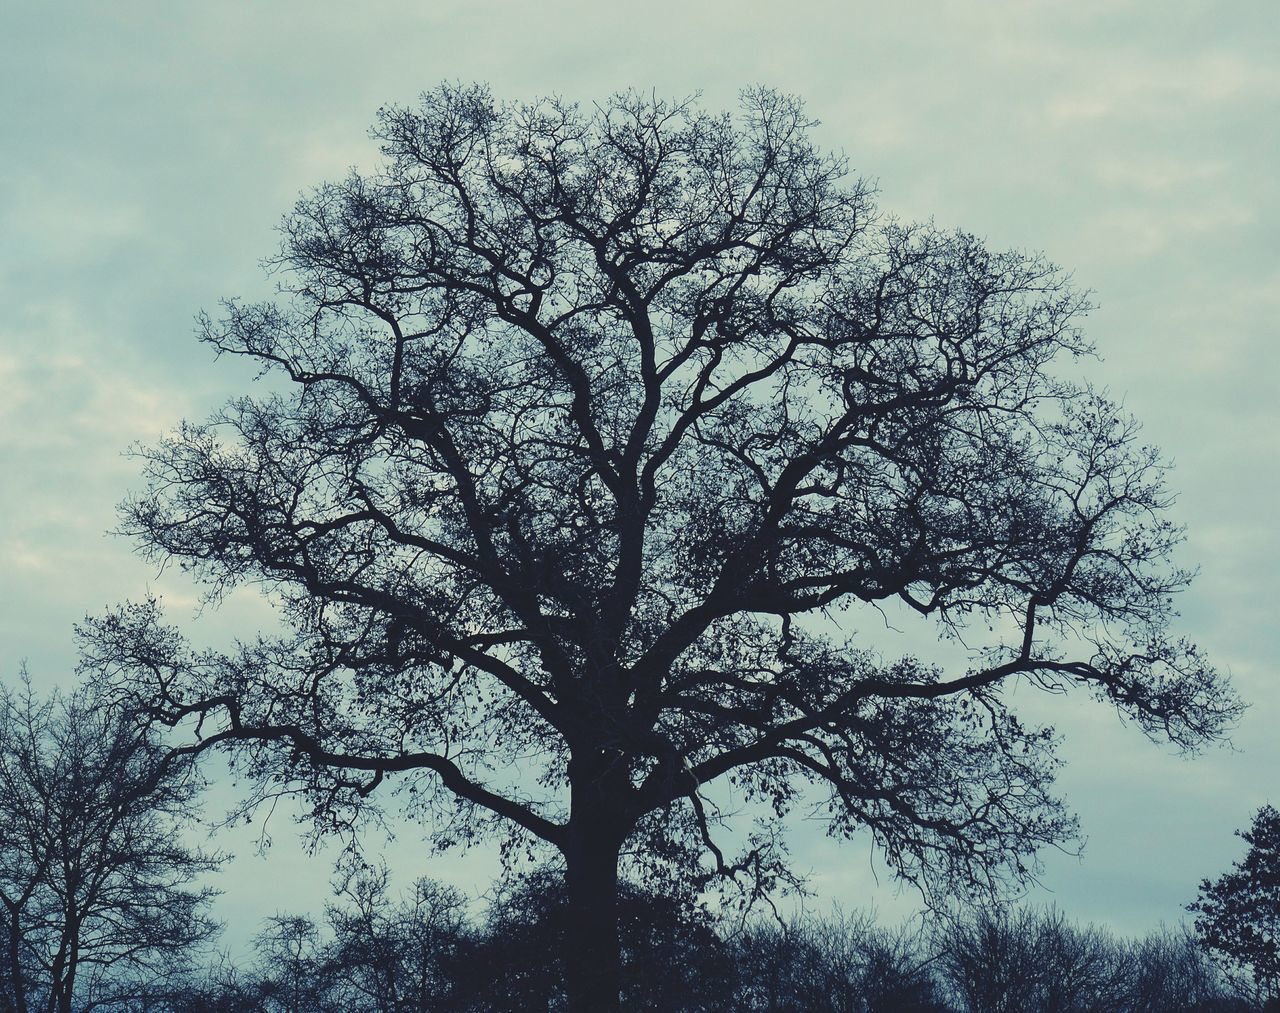 tree, low angle view, nature, sky, branch, outdoors, beauty in nature, no people, growth, day, height